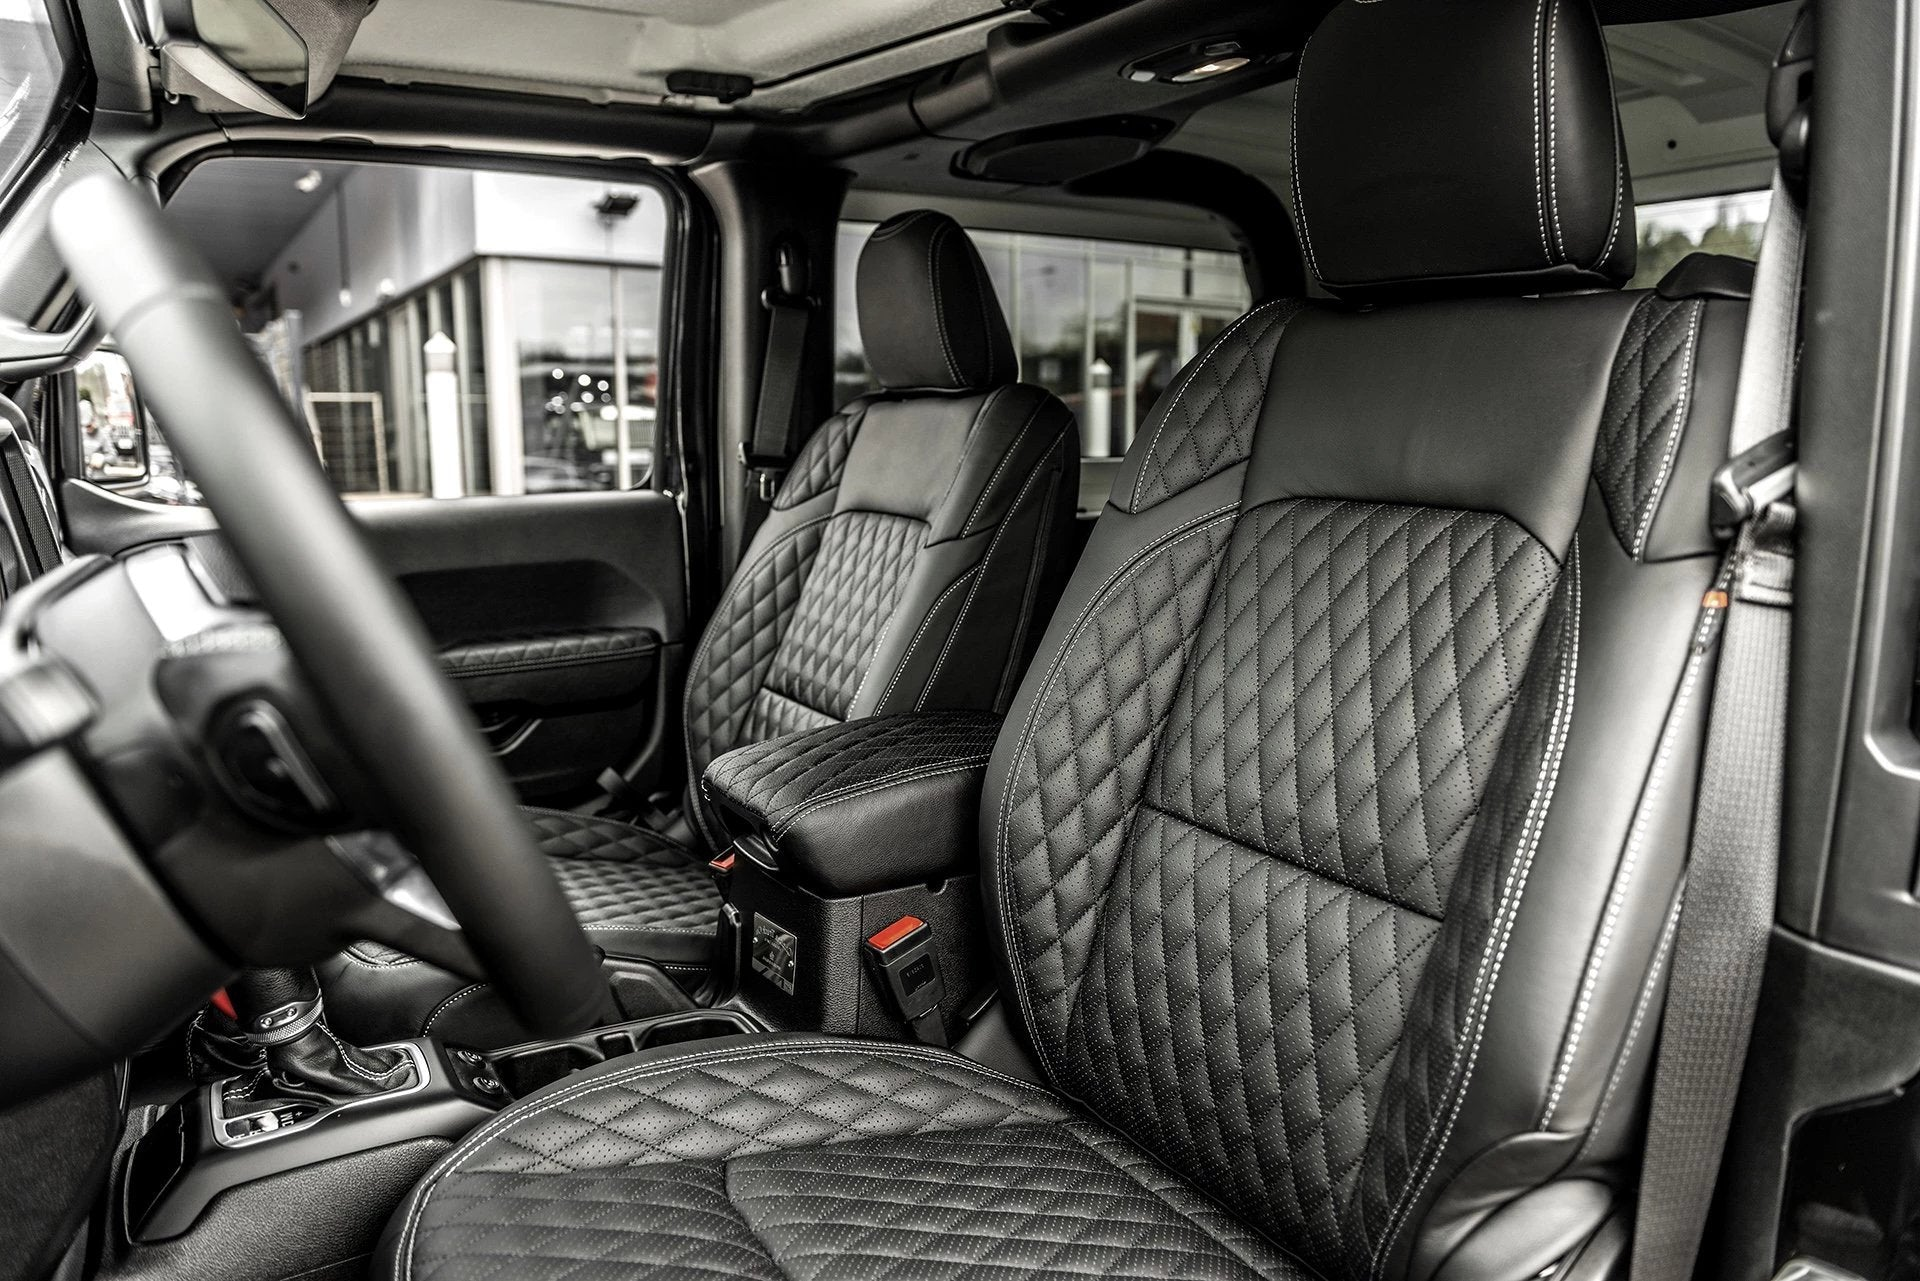 Jeep Wrangler Jl (2018-Present) 2 Door Leather Interior by Chelsea Truck Company - Image 1304